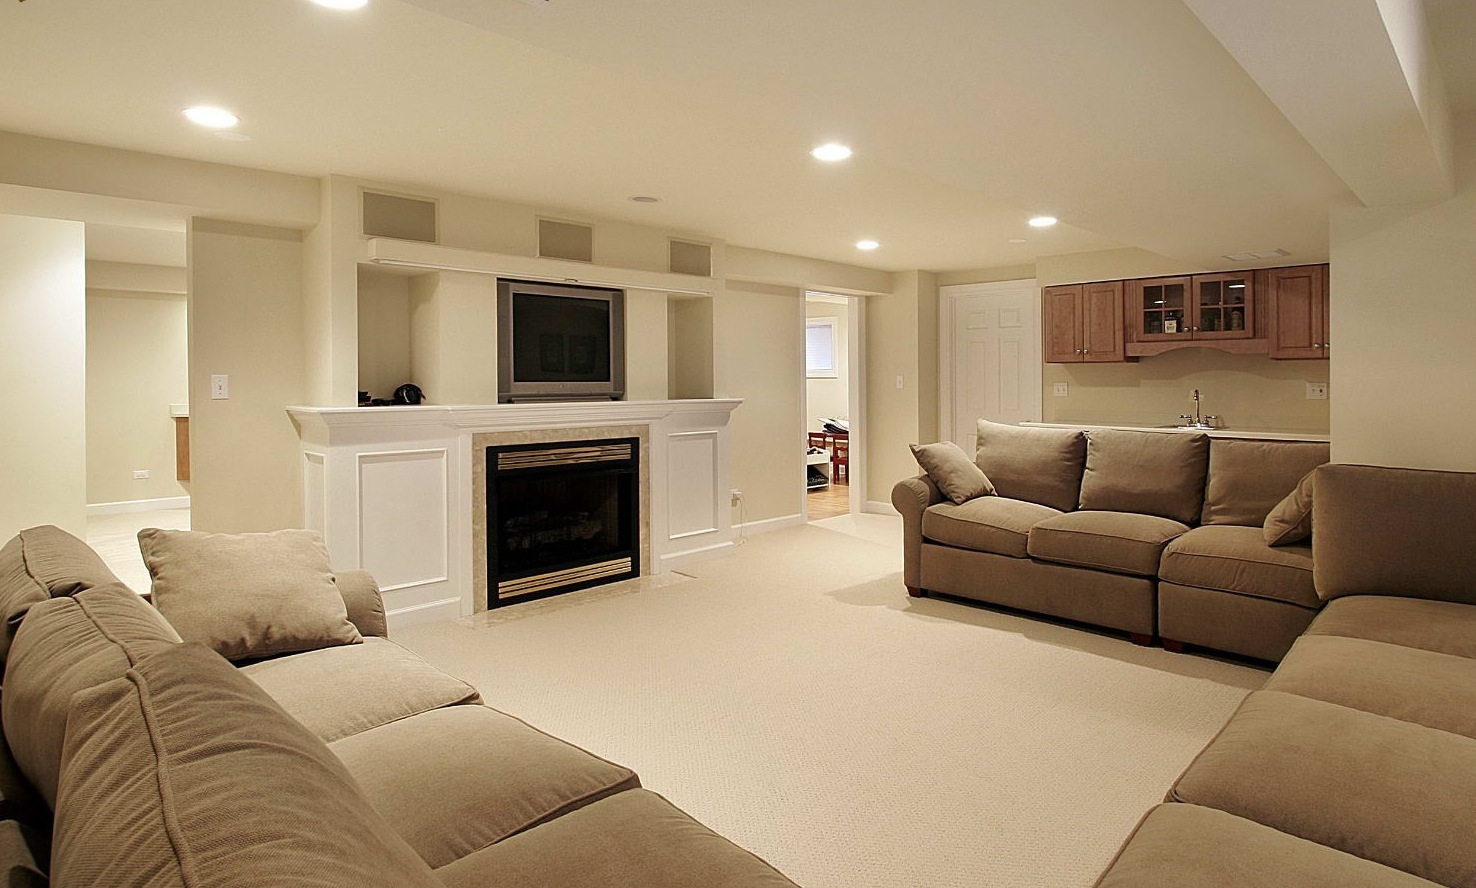 Home Basement Designs Decor Captivating 30 Basement Remodeling Ideas & Inspiration Review